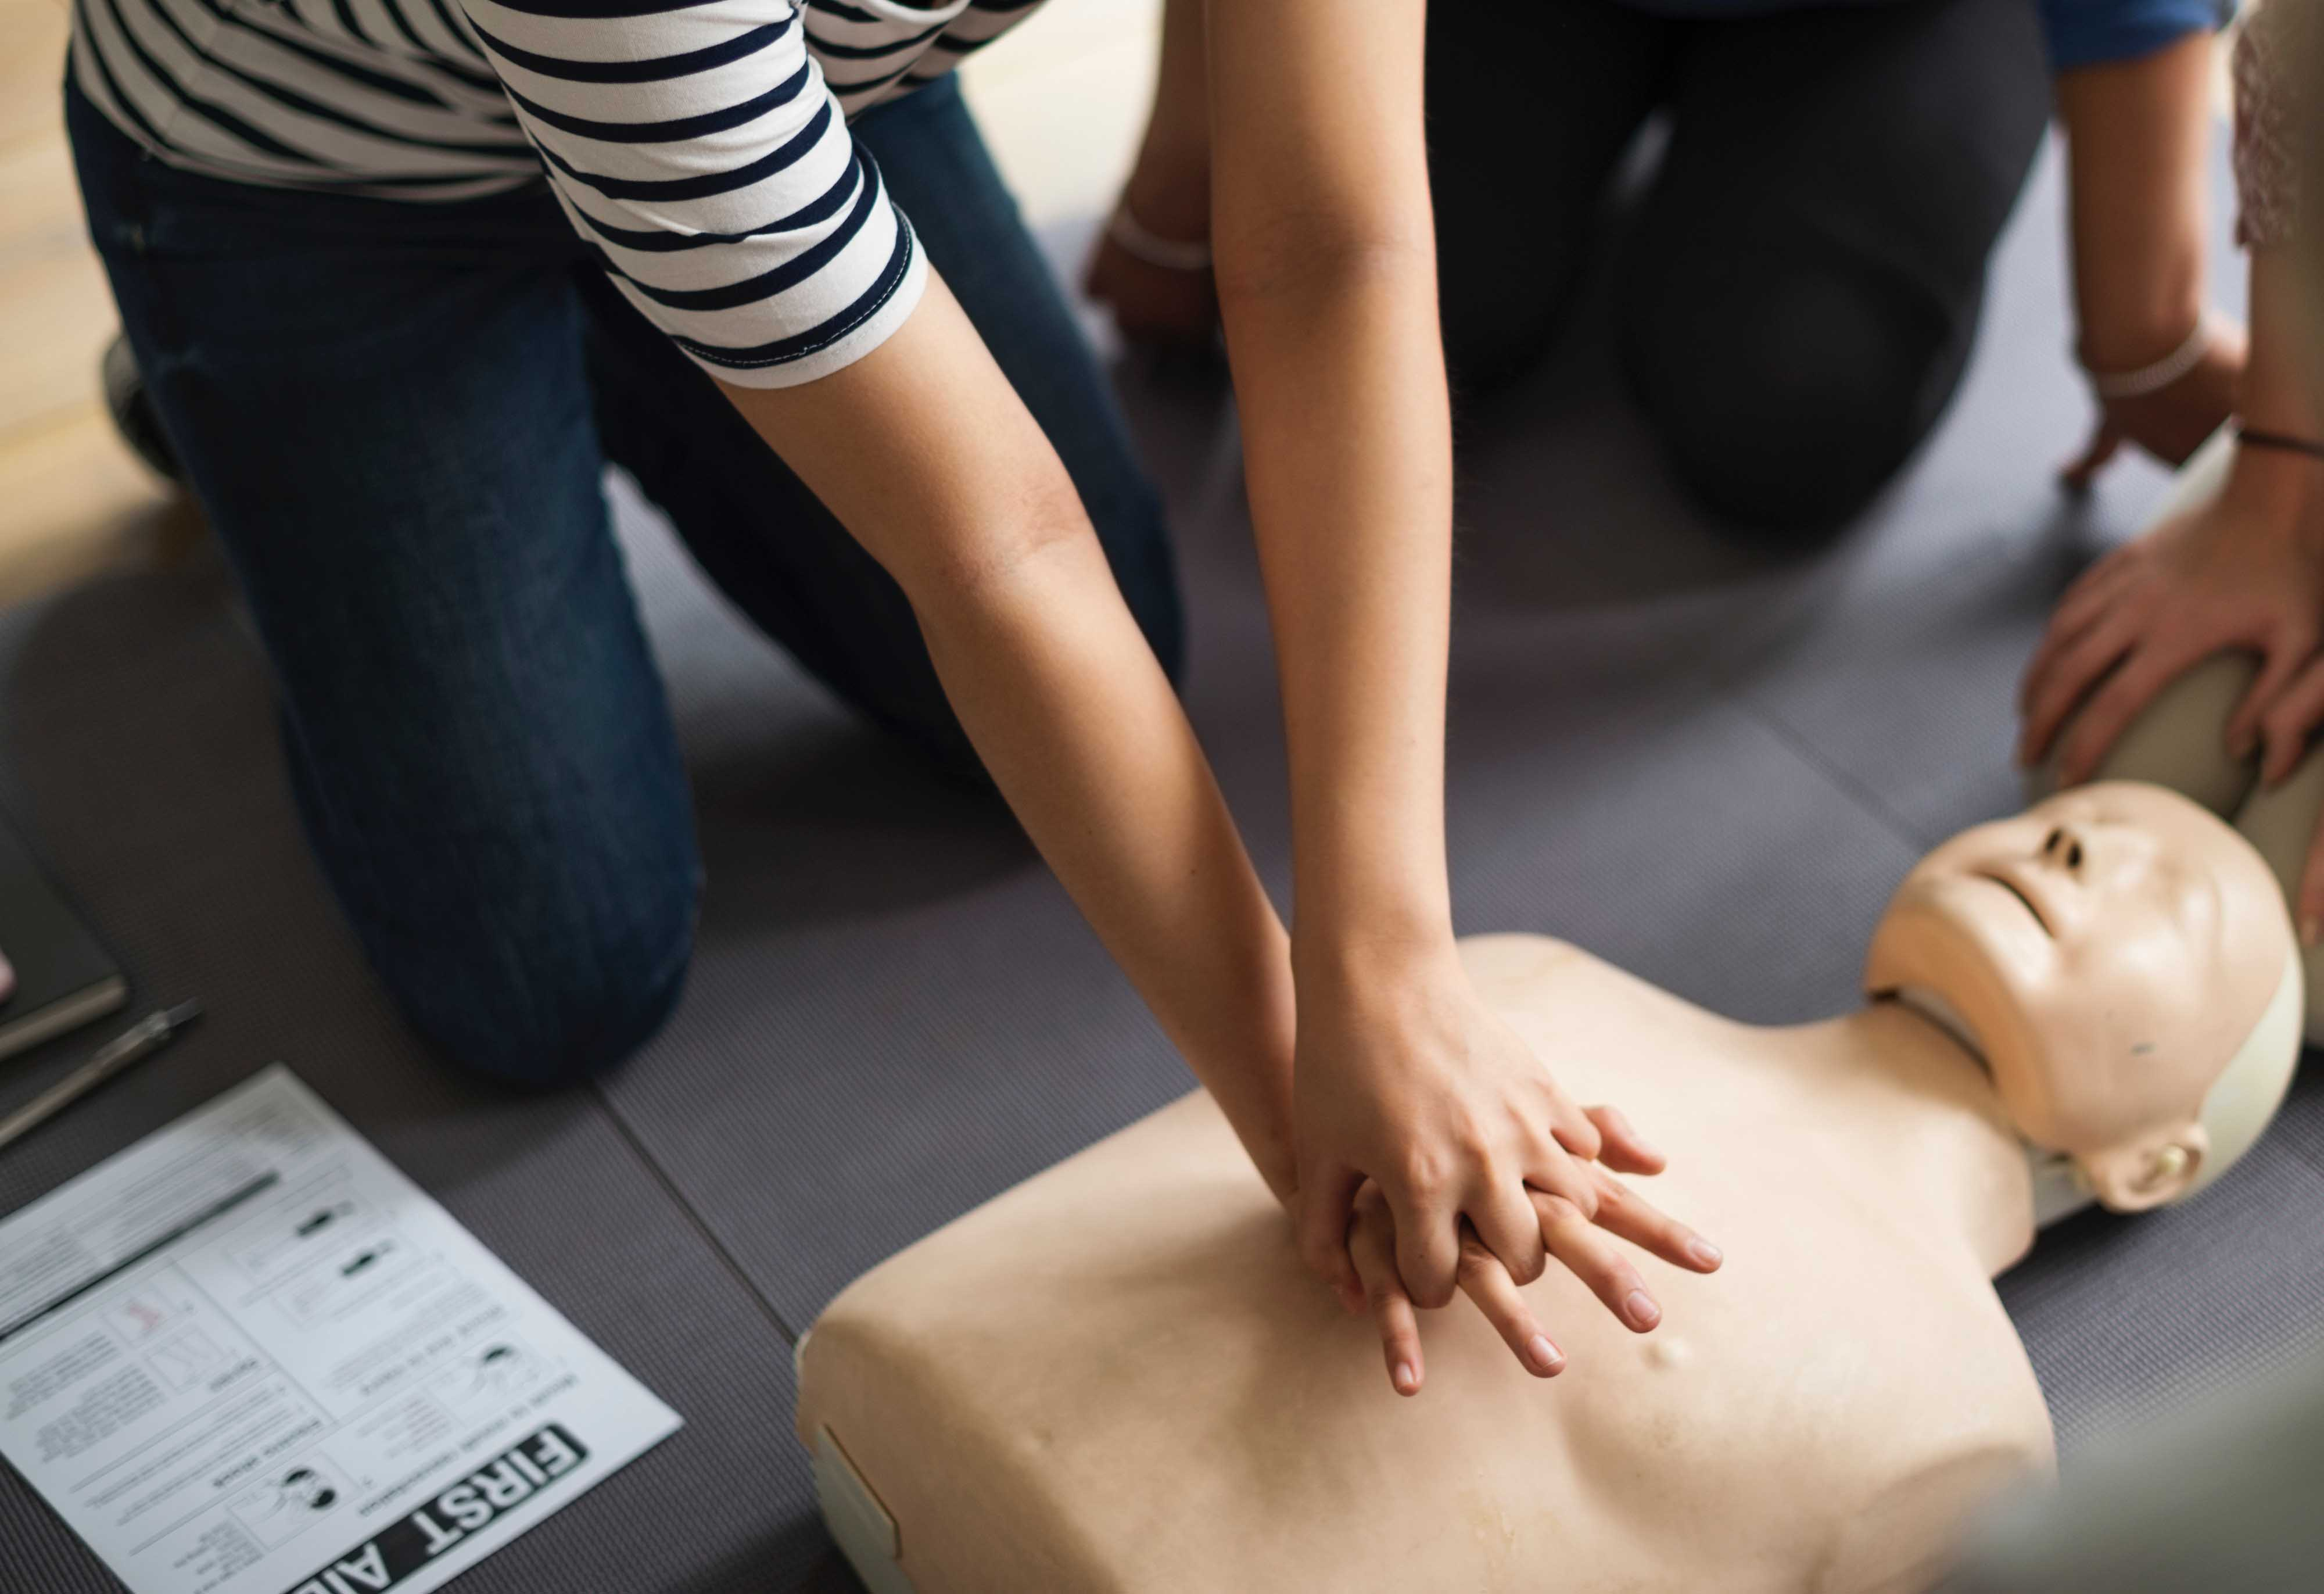 If the person isn't breathing after getting an electrical shock, it's time to perform CPR.